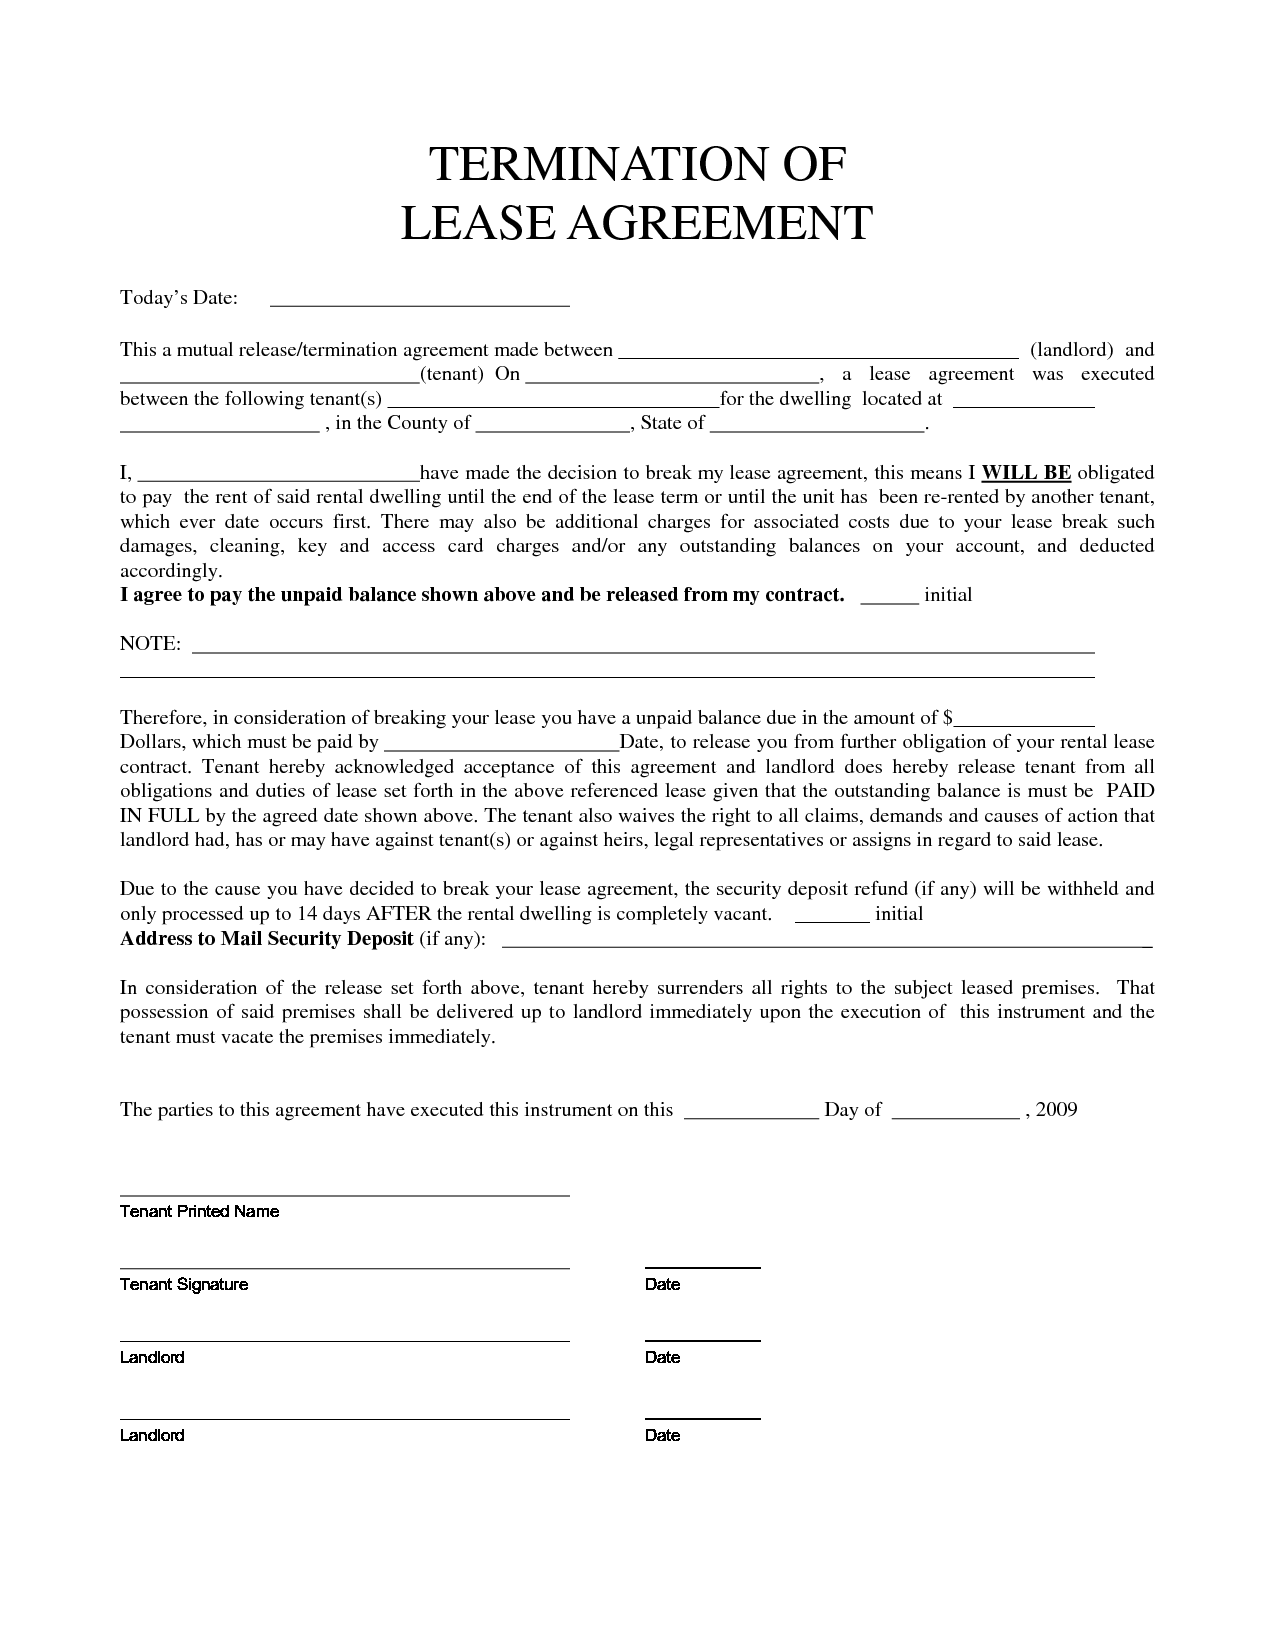 Personal property rental agreement forms property for Apartment lease maker